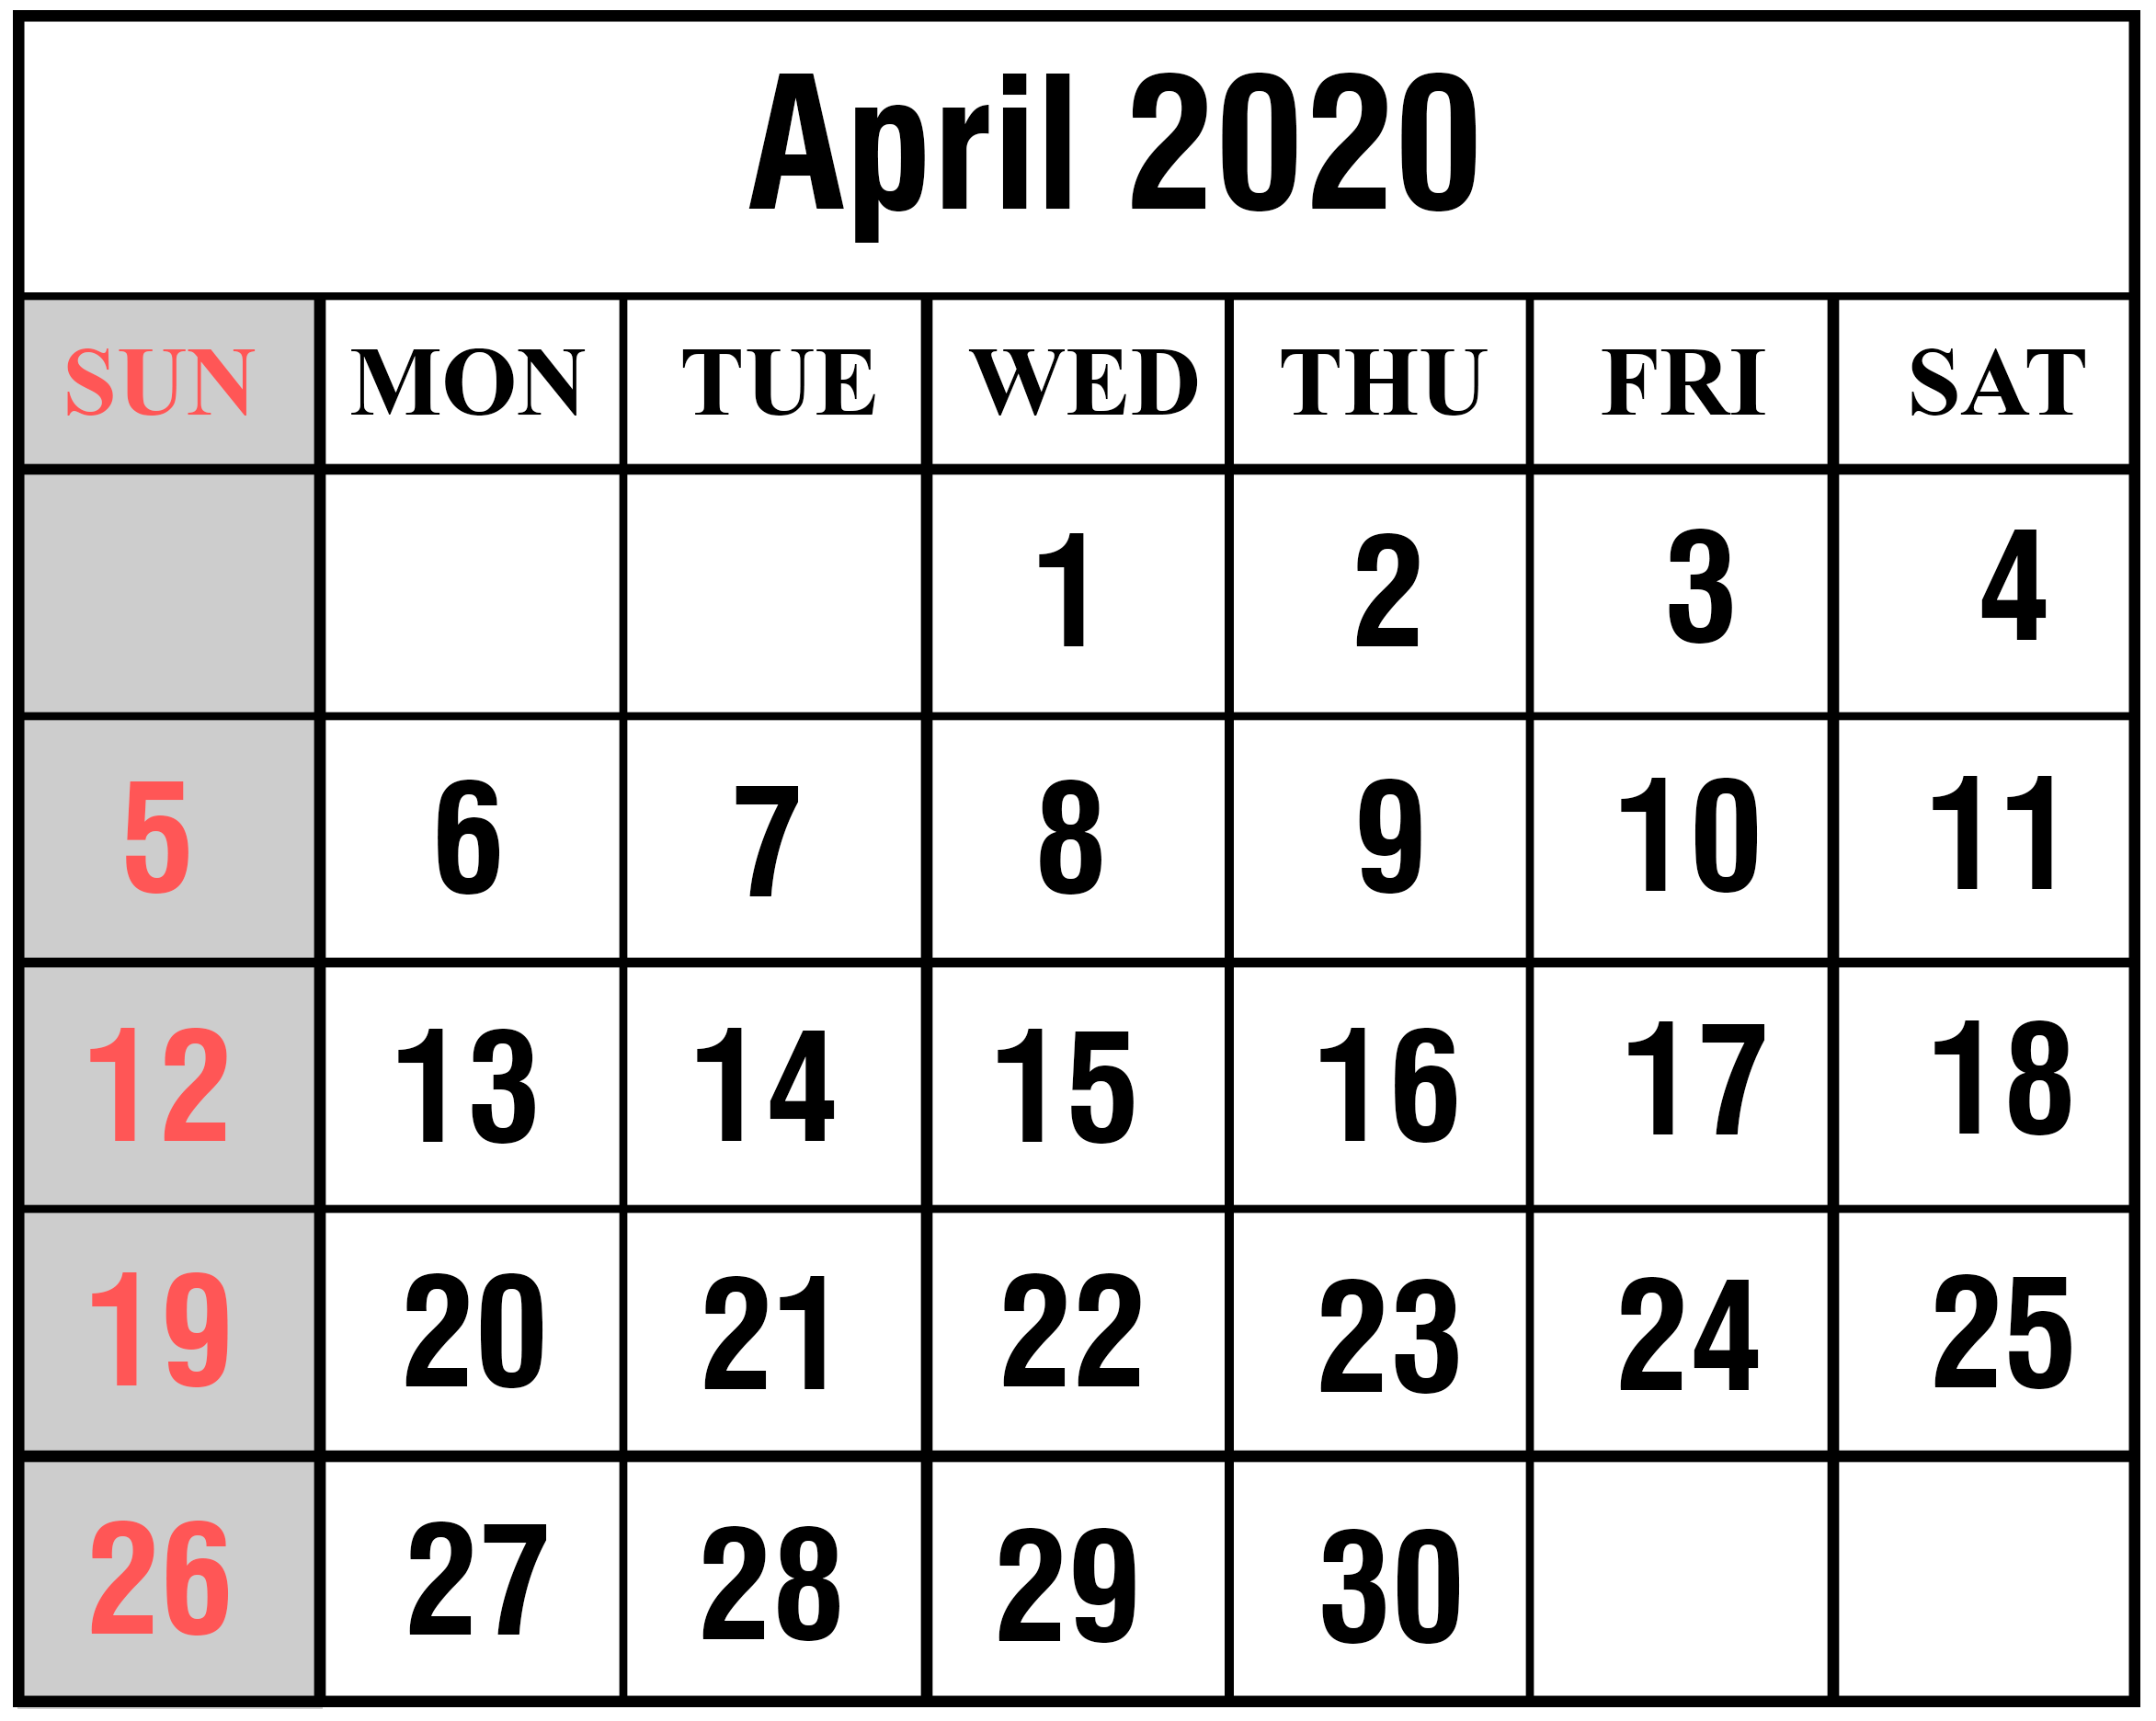 April 2020 Calendar Printable Template in PDF, Word, Excel – Free ...